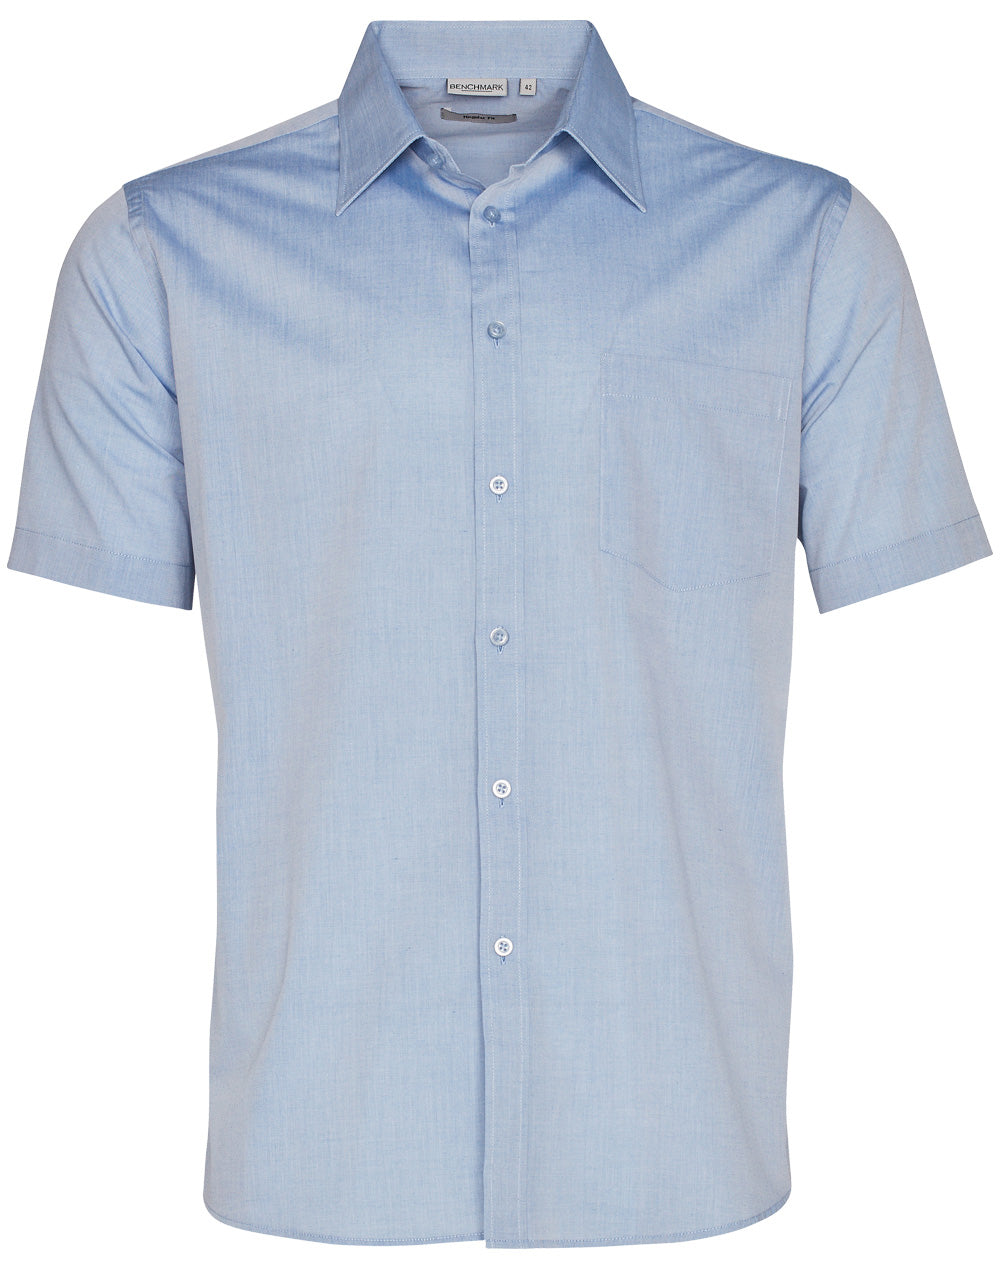 Winning Spirit Men's Fine Chambray Short Sleeve Shirt (M7011)